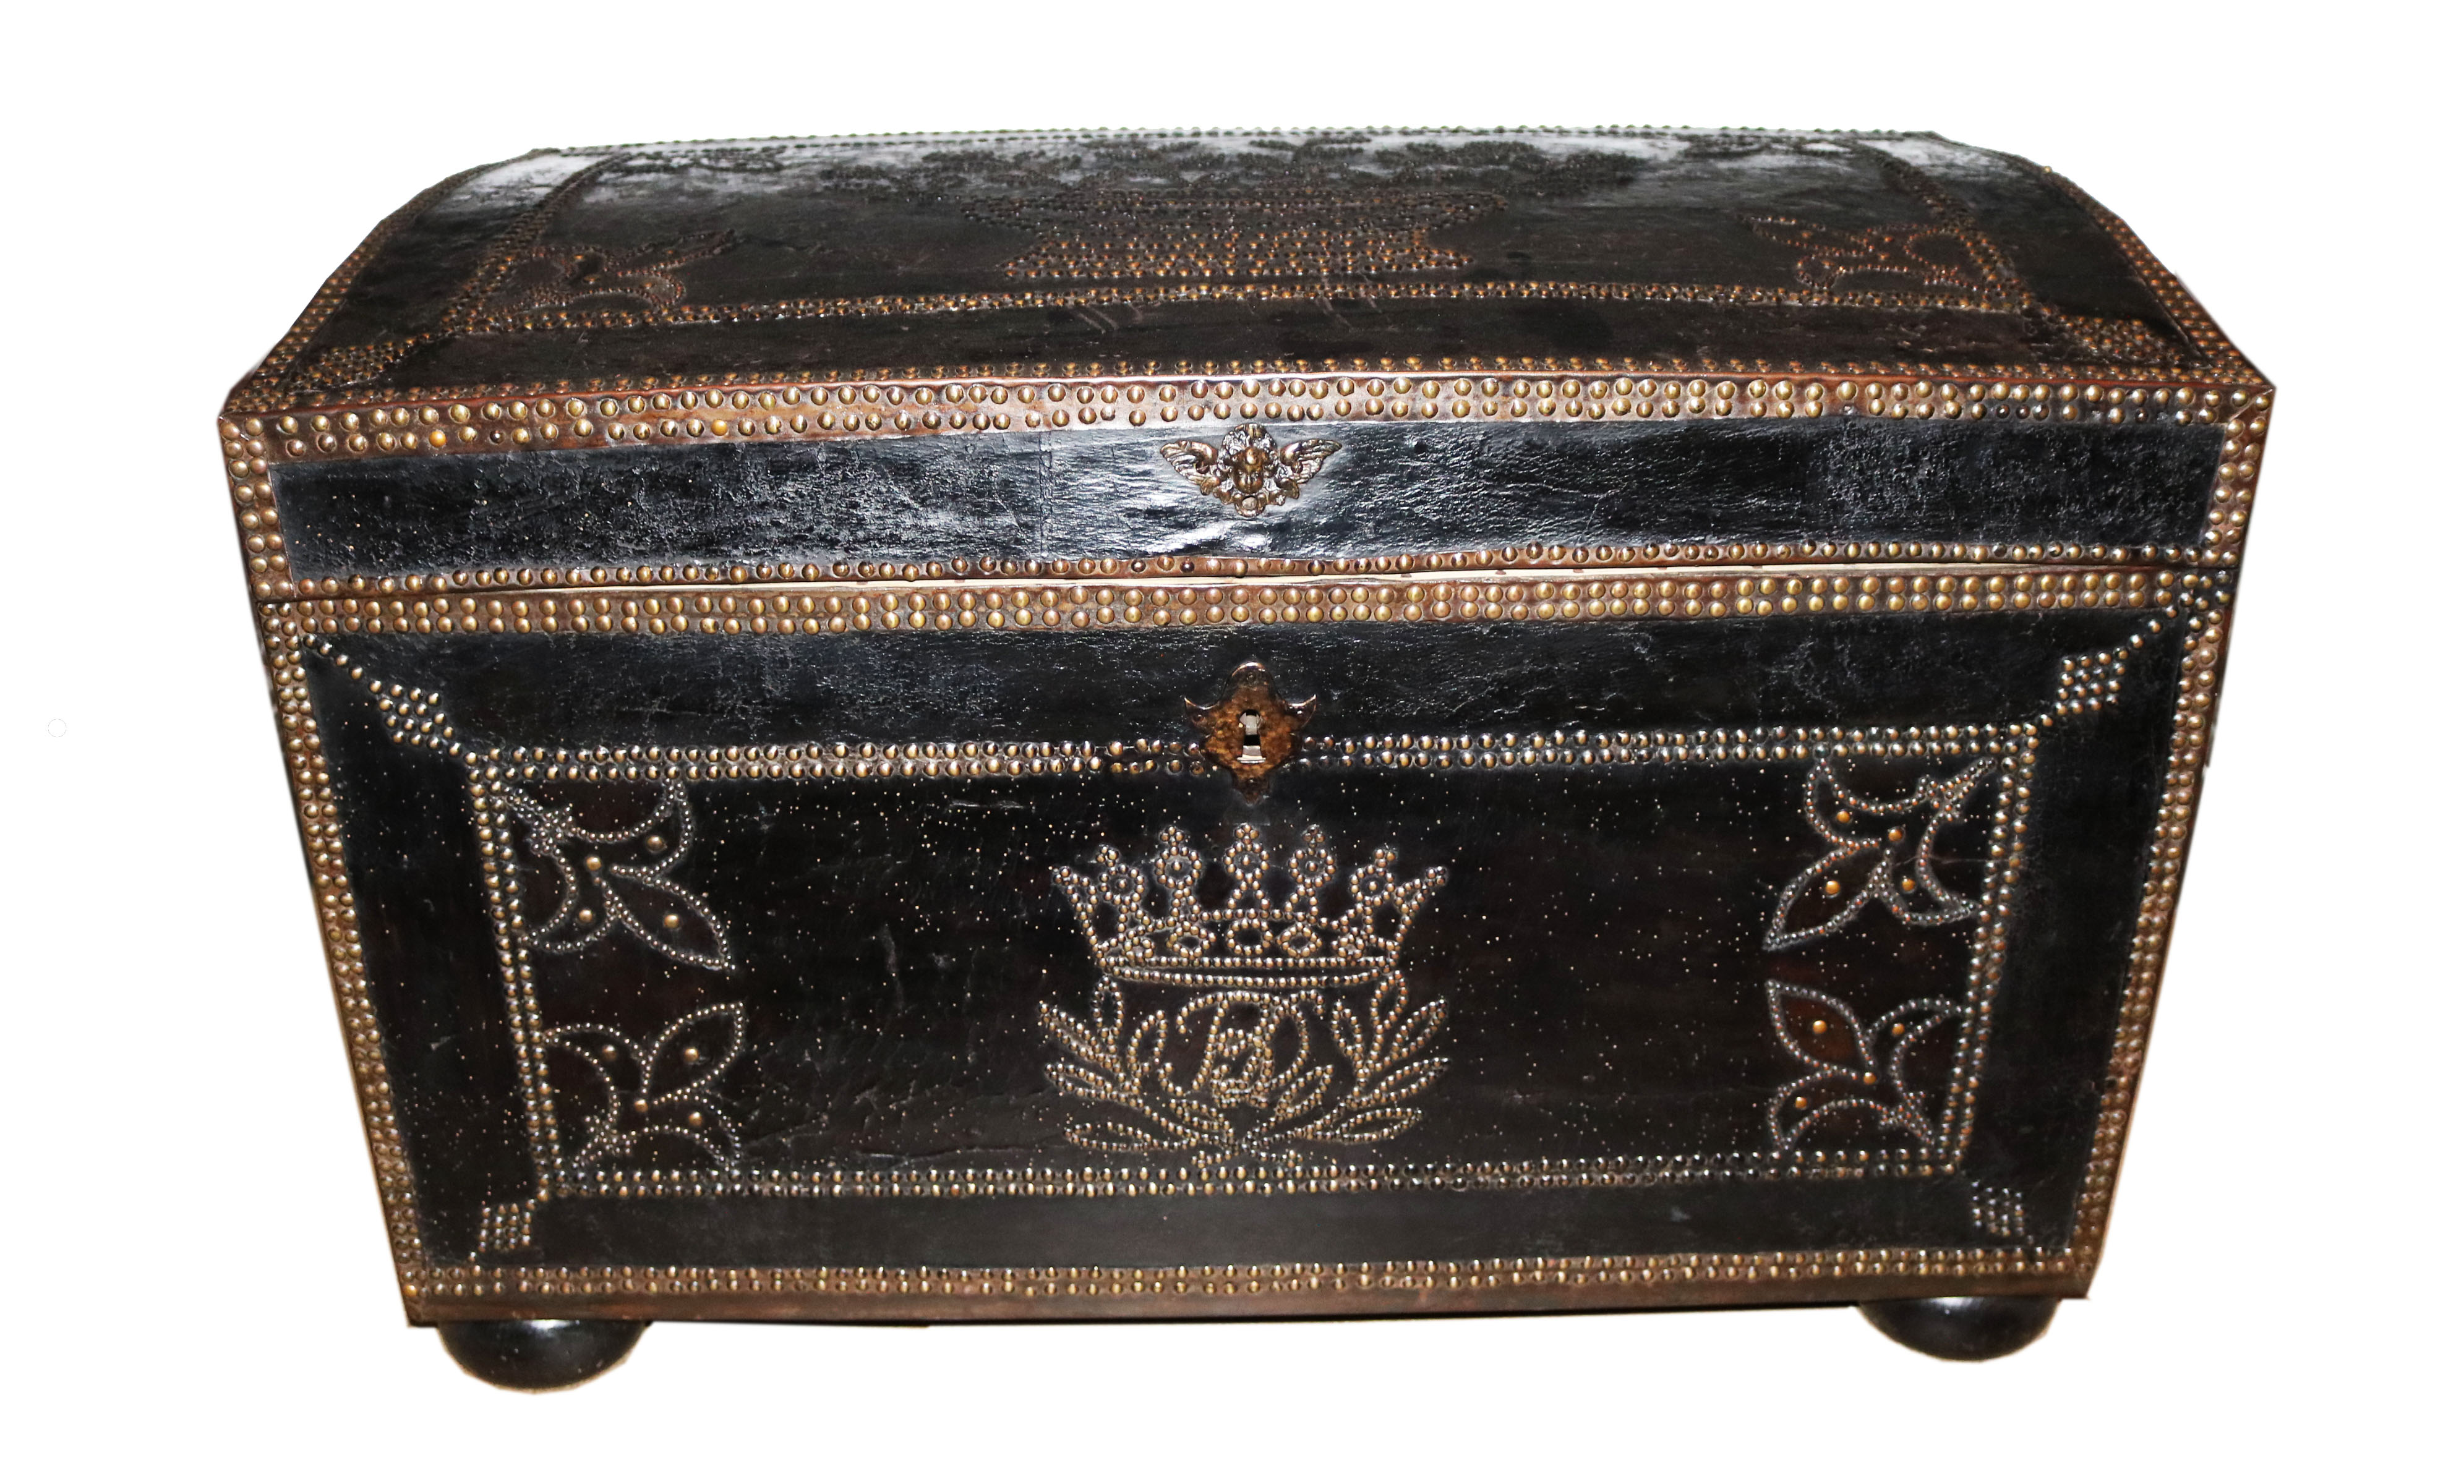 A Sizable 18th Century English Leather Bound Trunk No. 4762